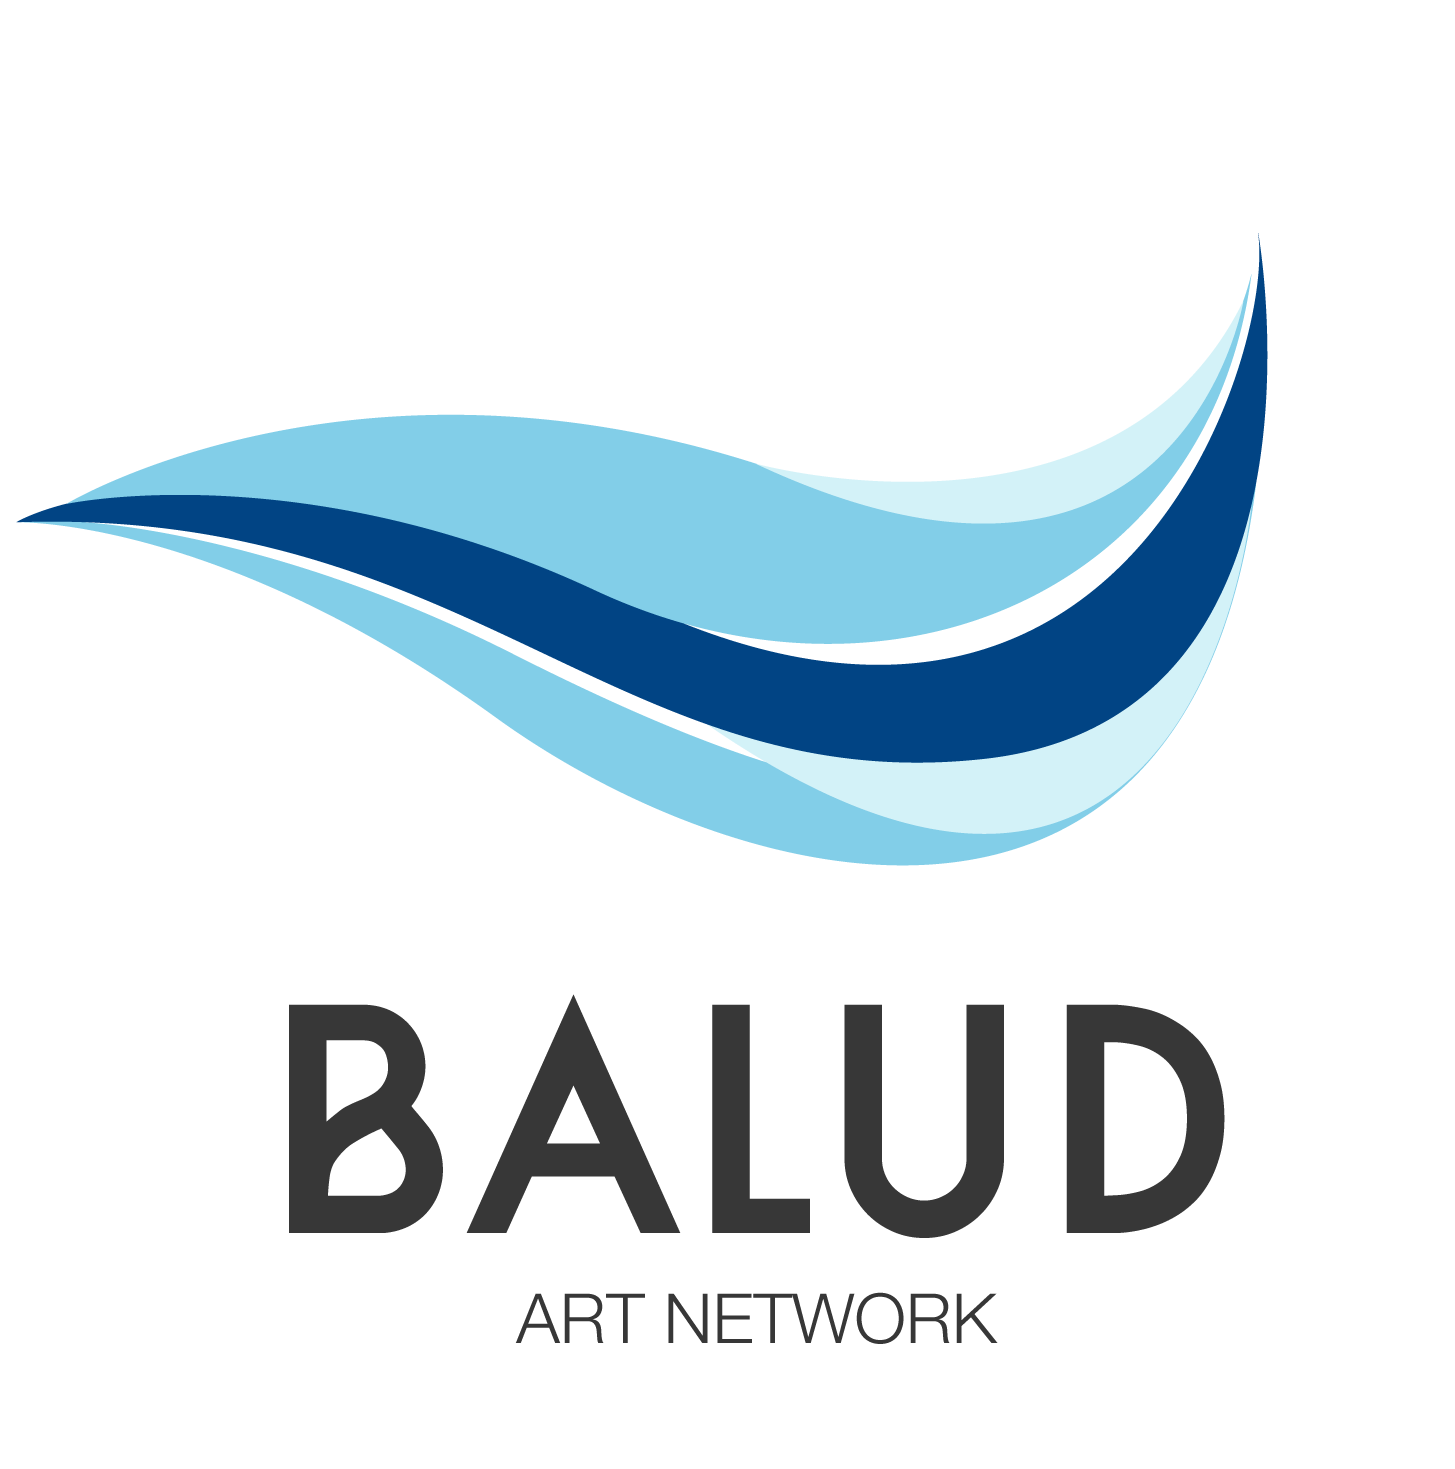 Balud Art Network